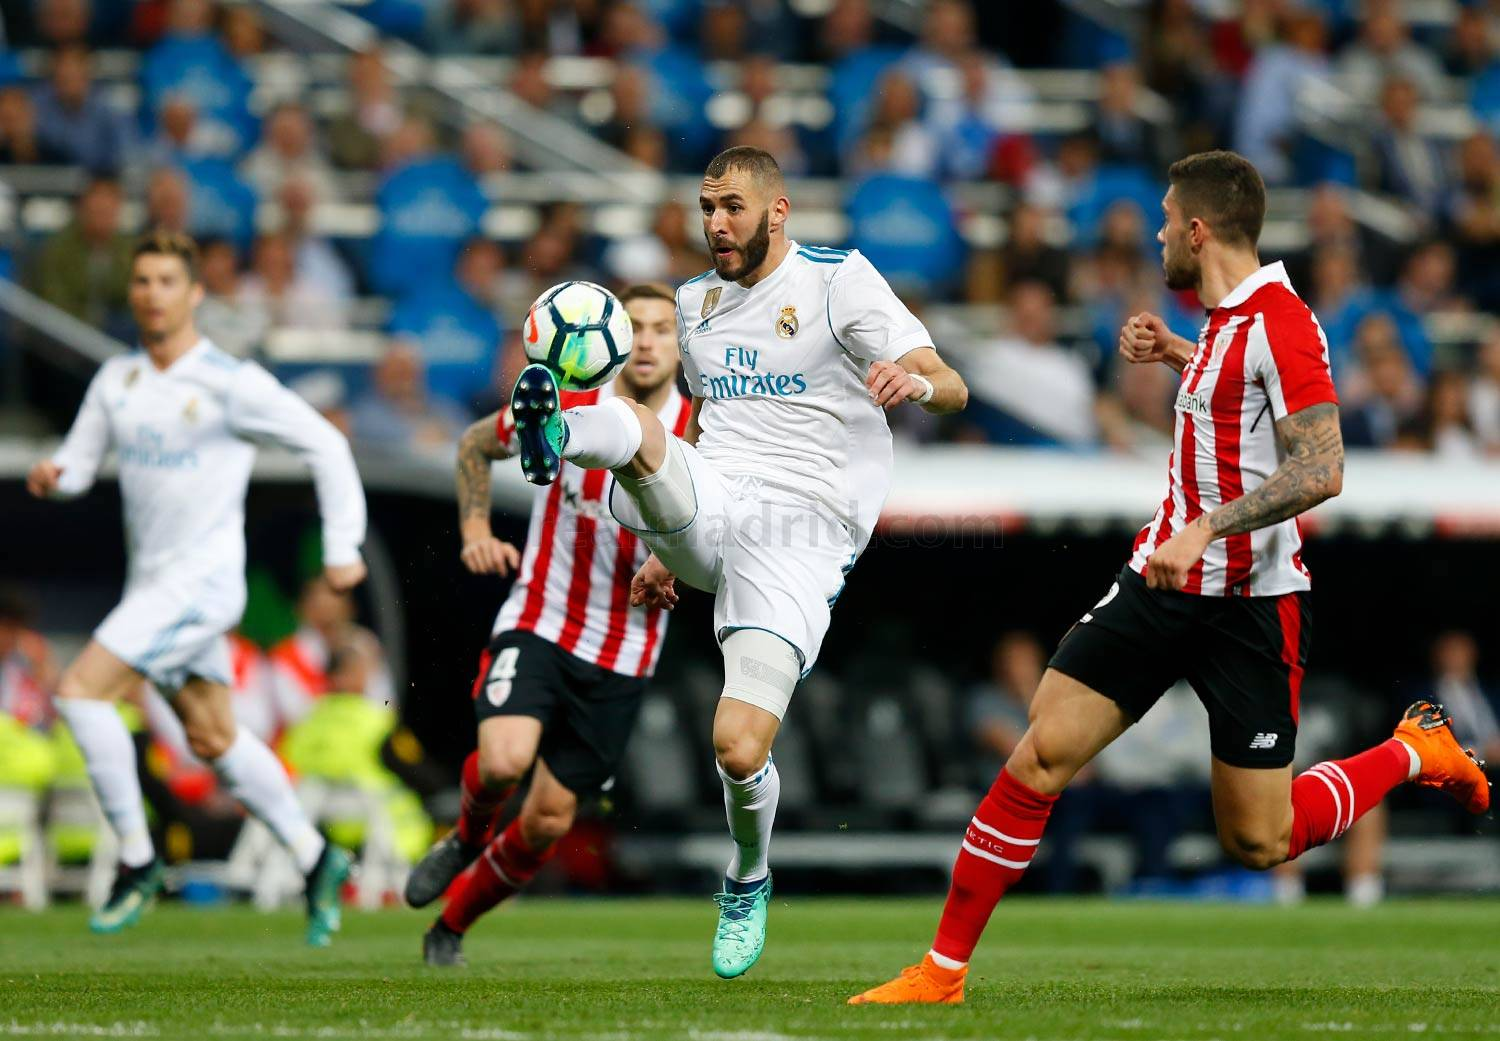 Real Madrid - Real Madrid - Athletic Club - 18-04-2018